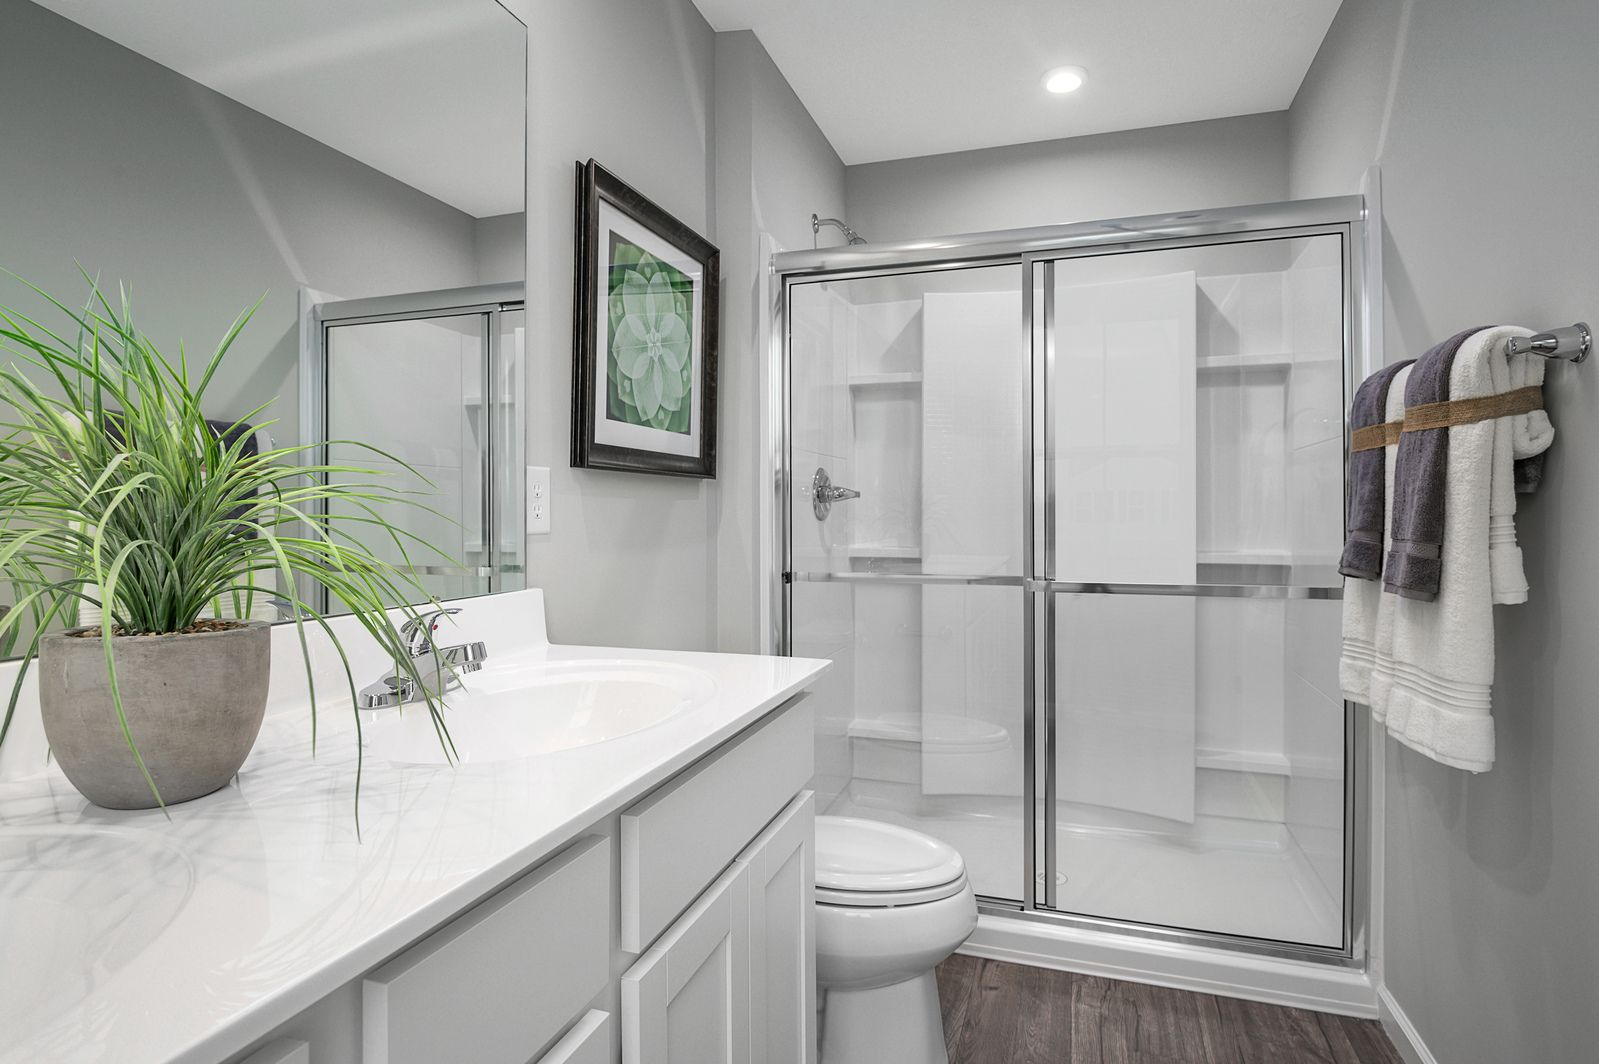 Bathroom featured in the Cedar By Ryan Homes in Akron, OH